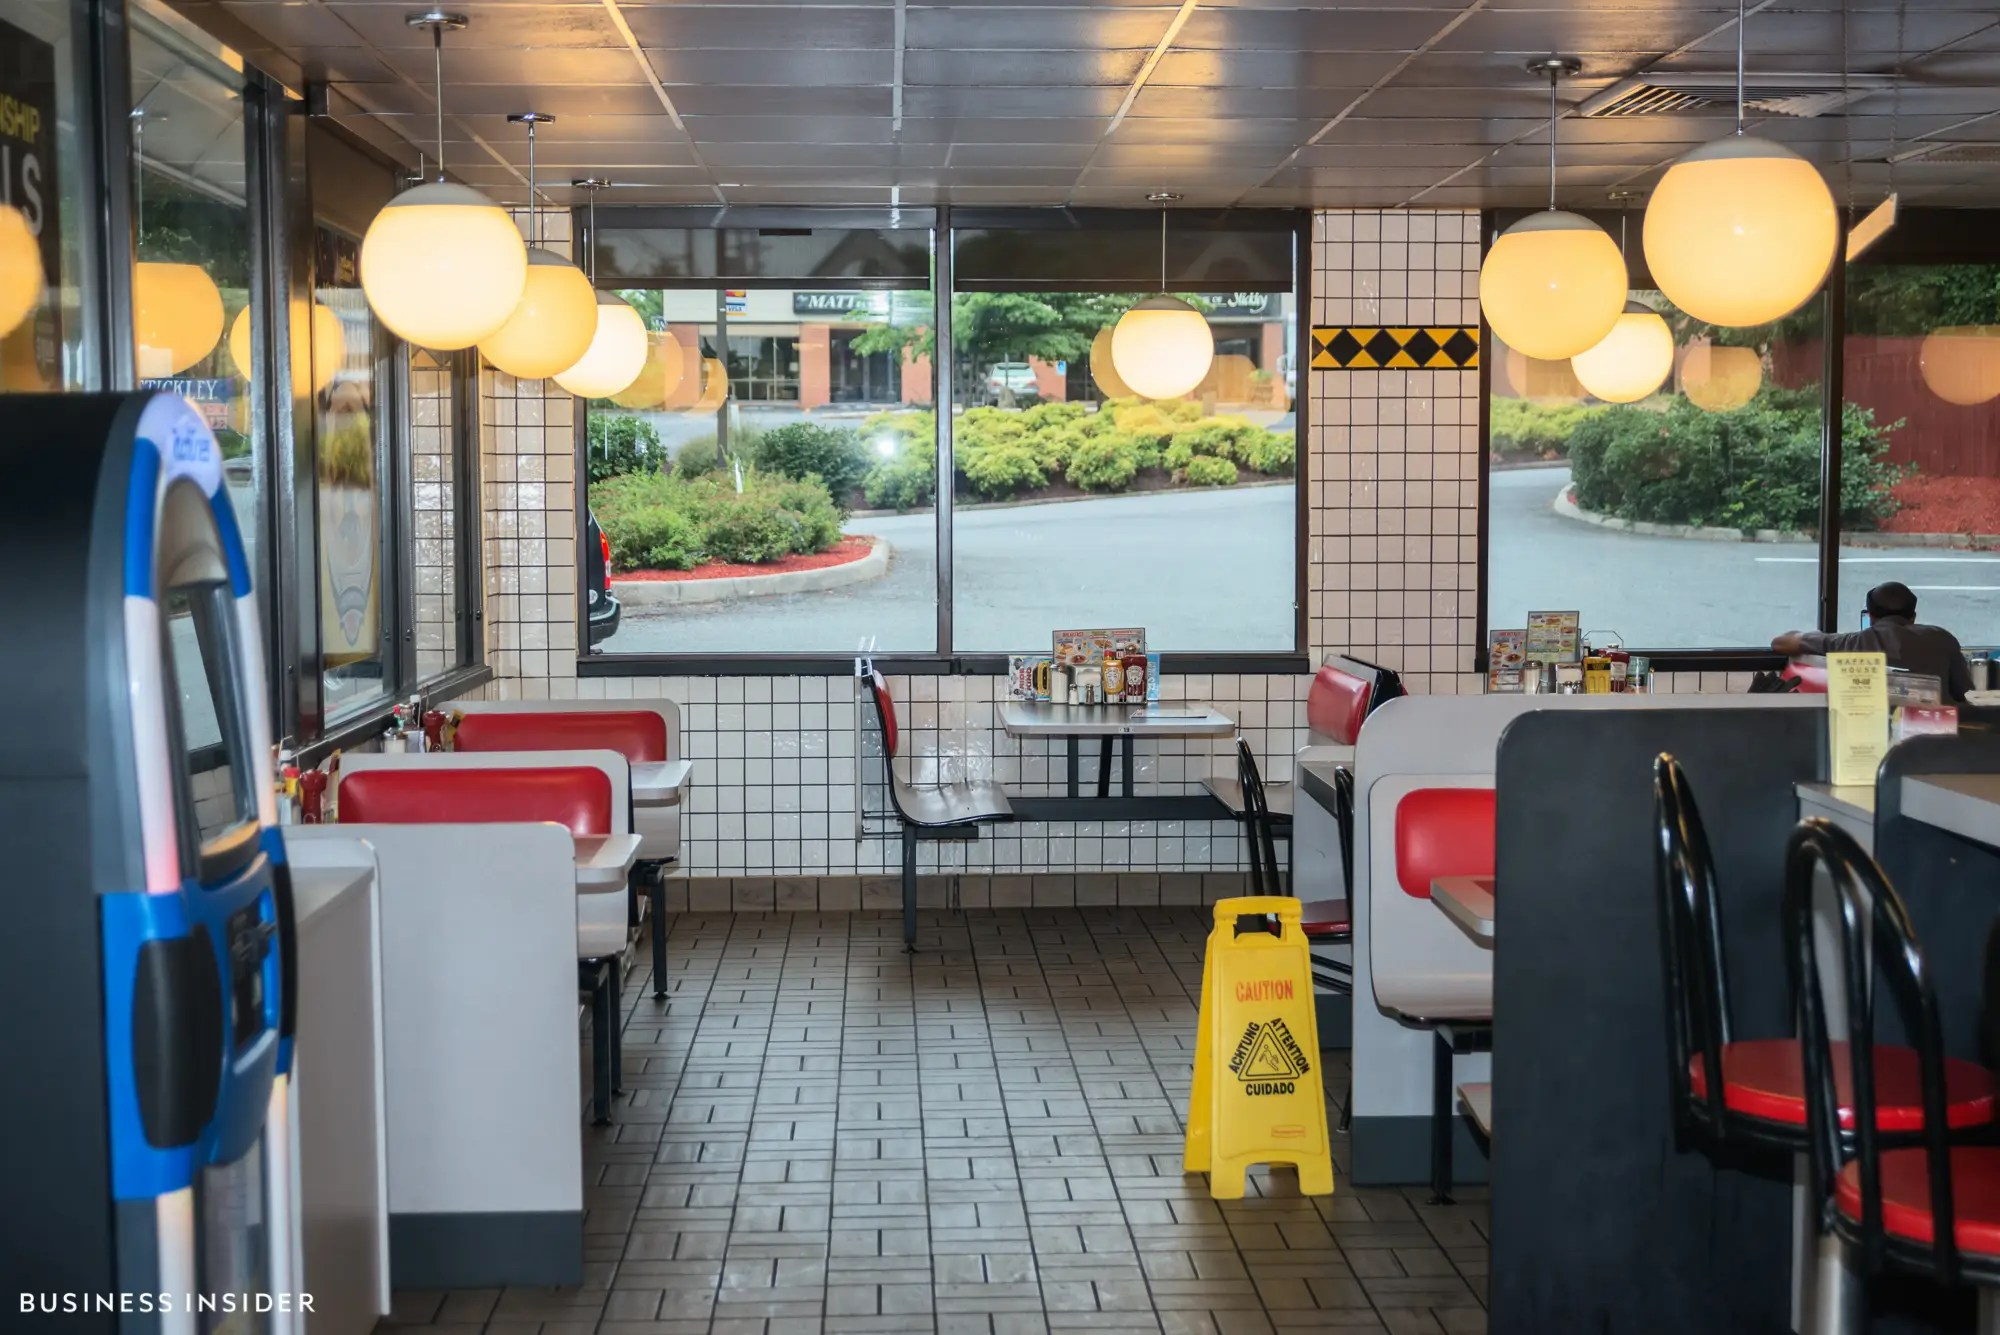 Inside, Waffle House has a classic diner feel. Subway tiles, vinyl booths, and the ubiquitous jukebox lend a comforting timelessness. The chain avoids jumping on the latest dining trends — no raw wood or industrial lighting fixtures here.